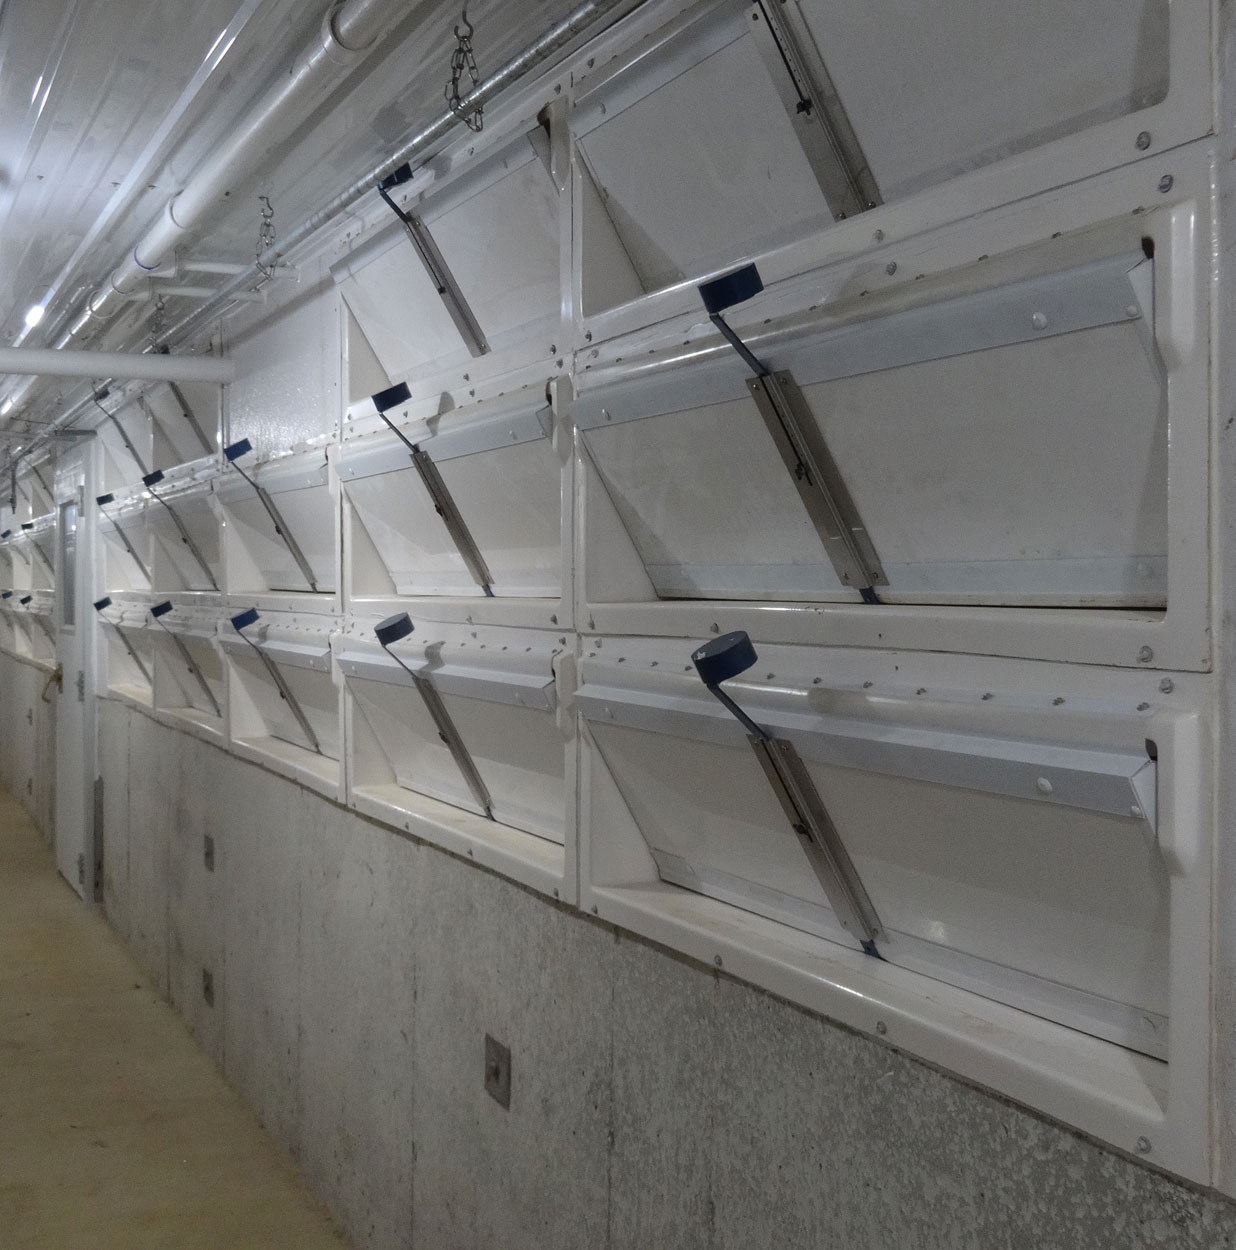 Banks of Hog Slat single wall air inlets can be installed for each farrowing room in a barn; allowing producers to customize and quickly adjust the incoming air flow for each room individually.